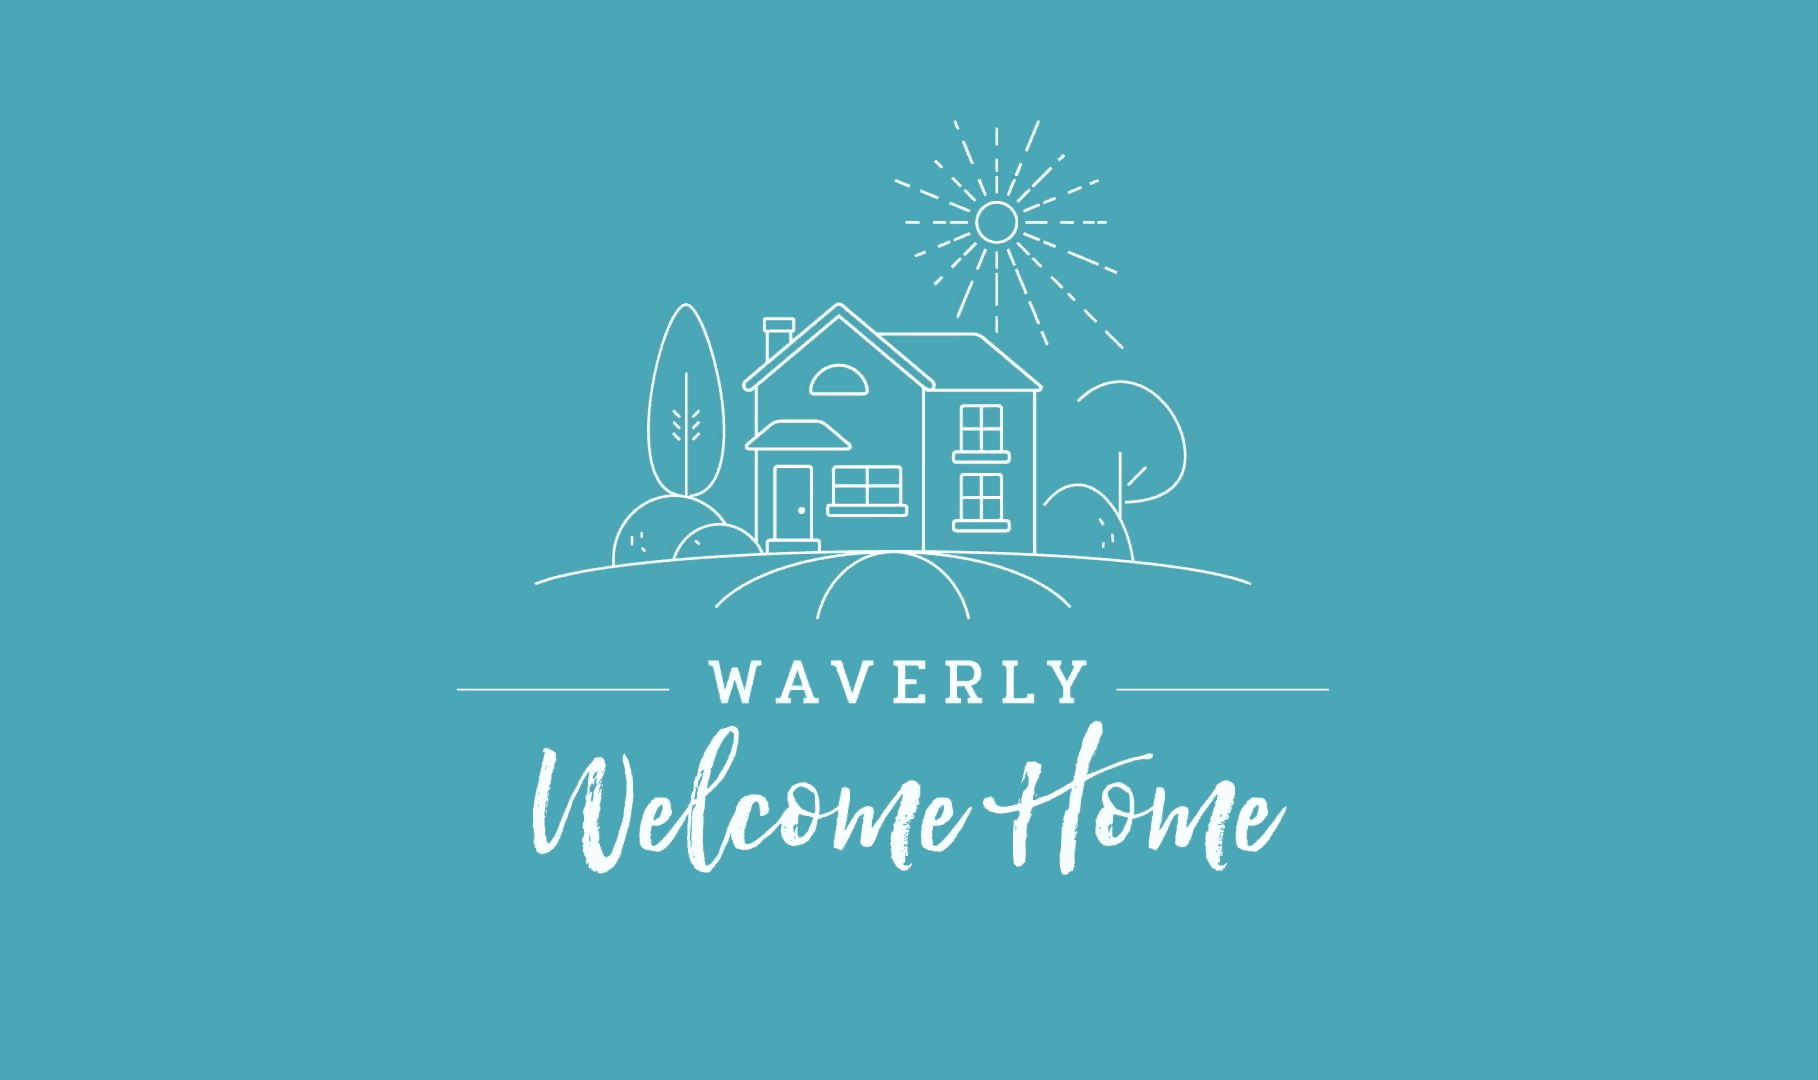 Waverly Welcome Home Community